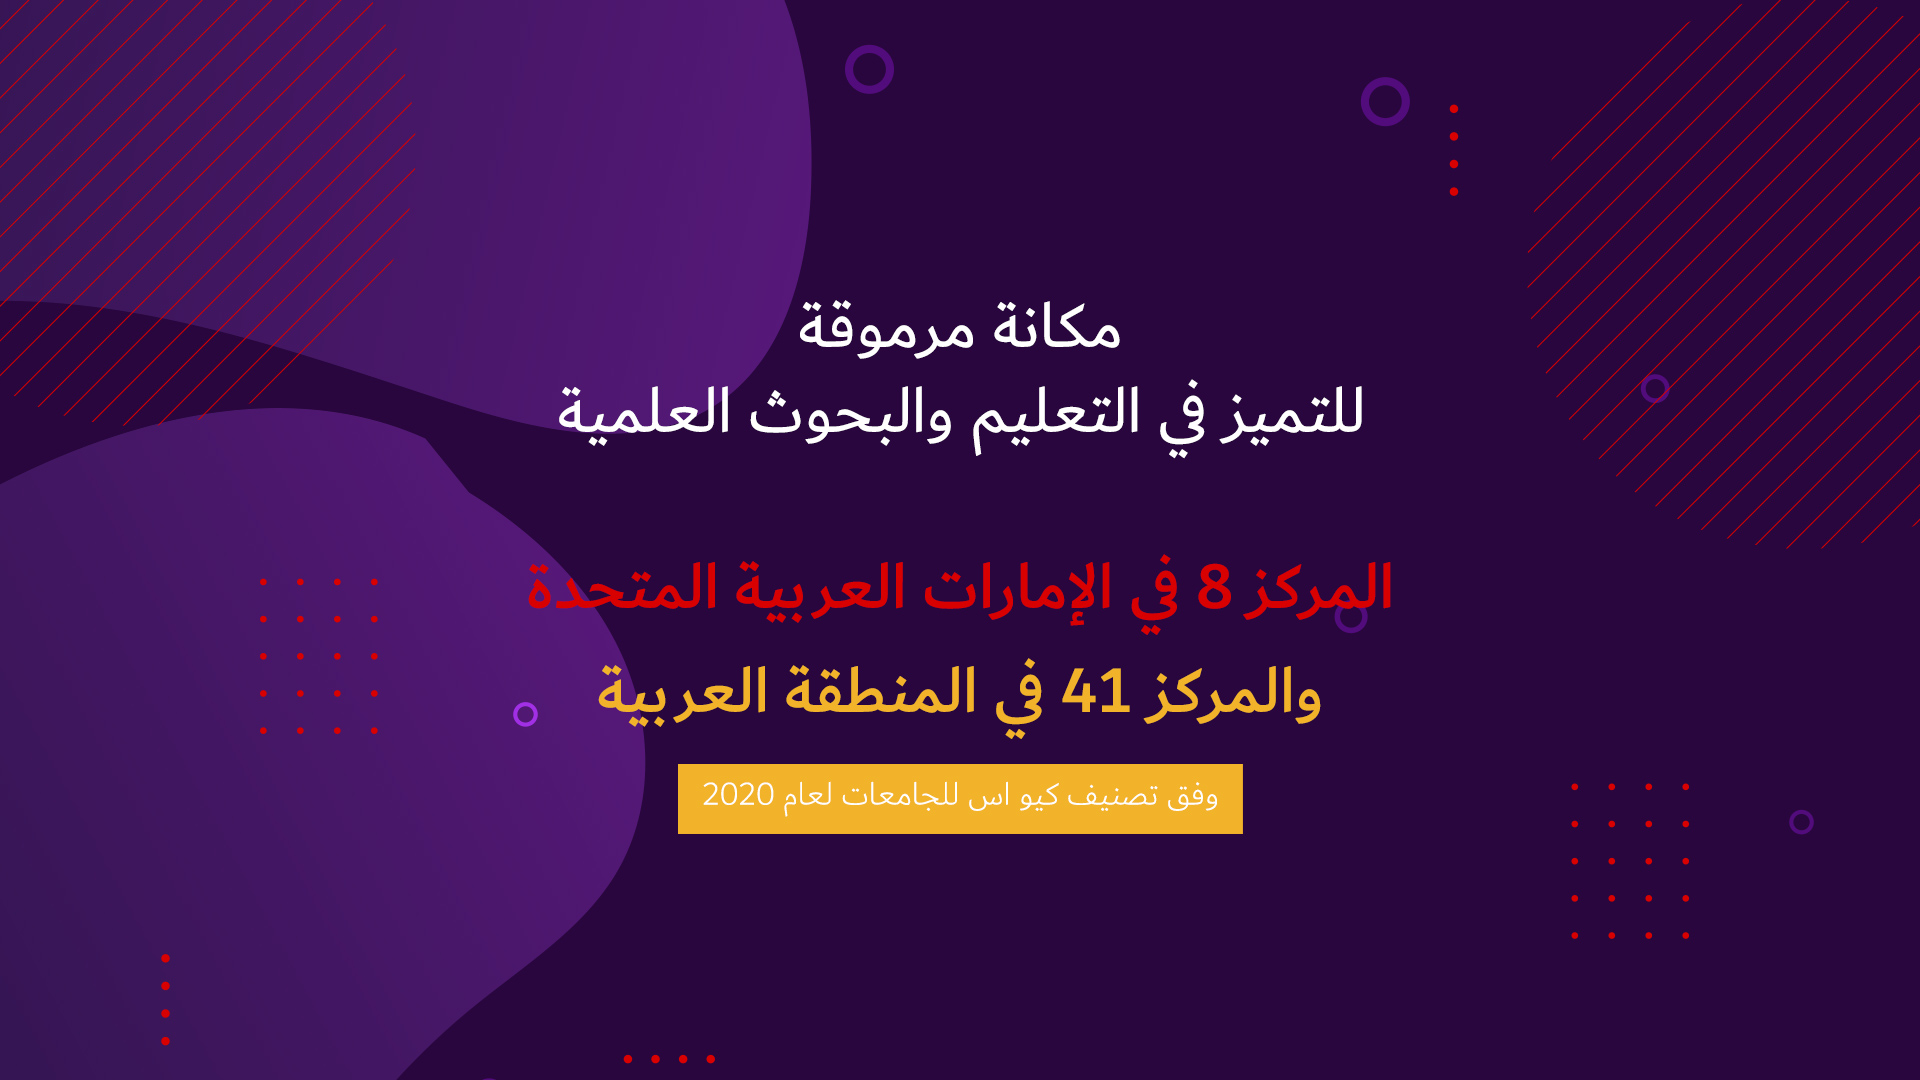 (Arabic) QS Ranking 41st of Top 50 Arab Region Universities - with info